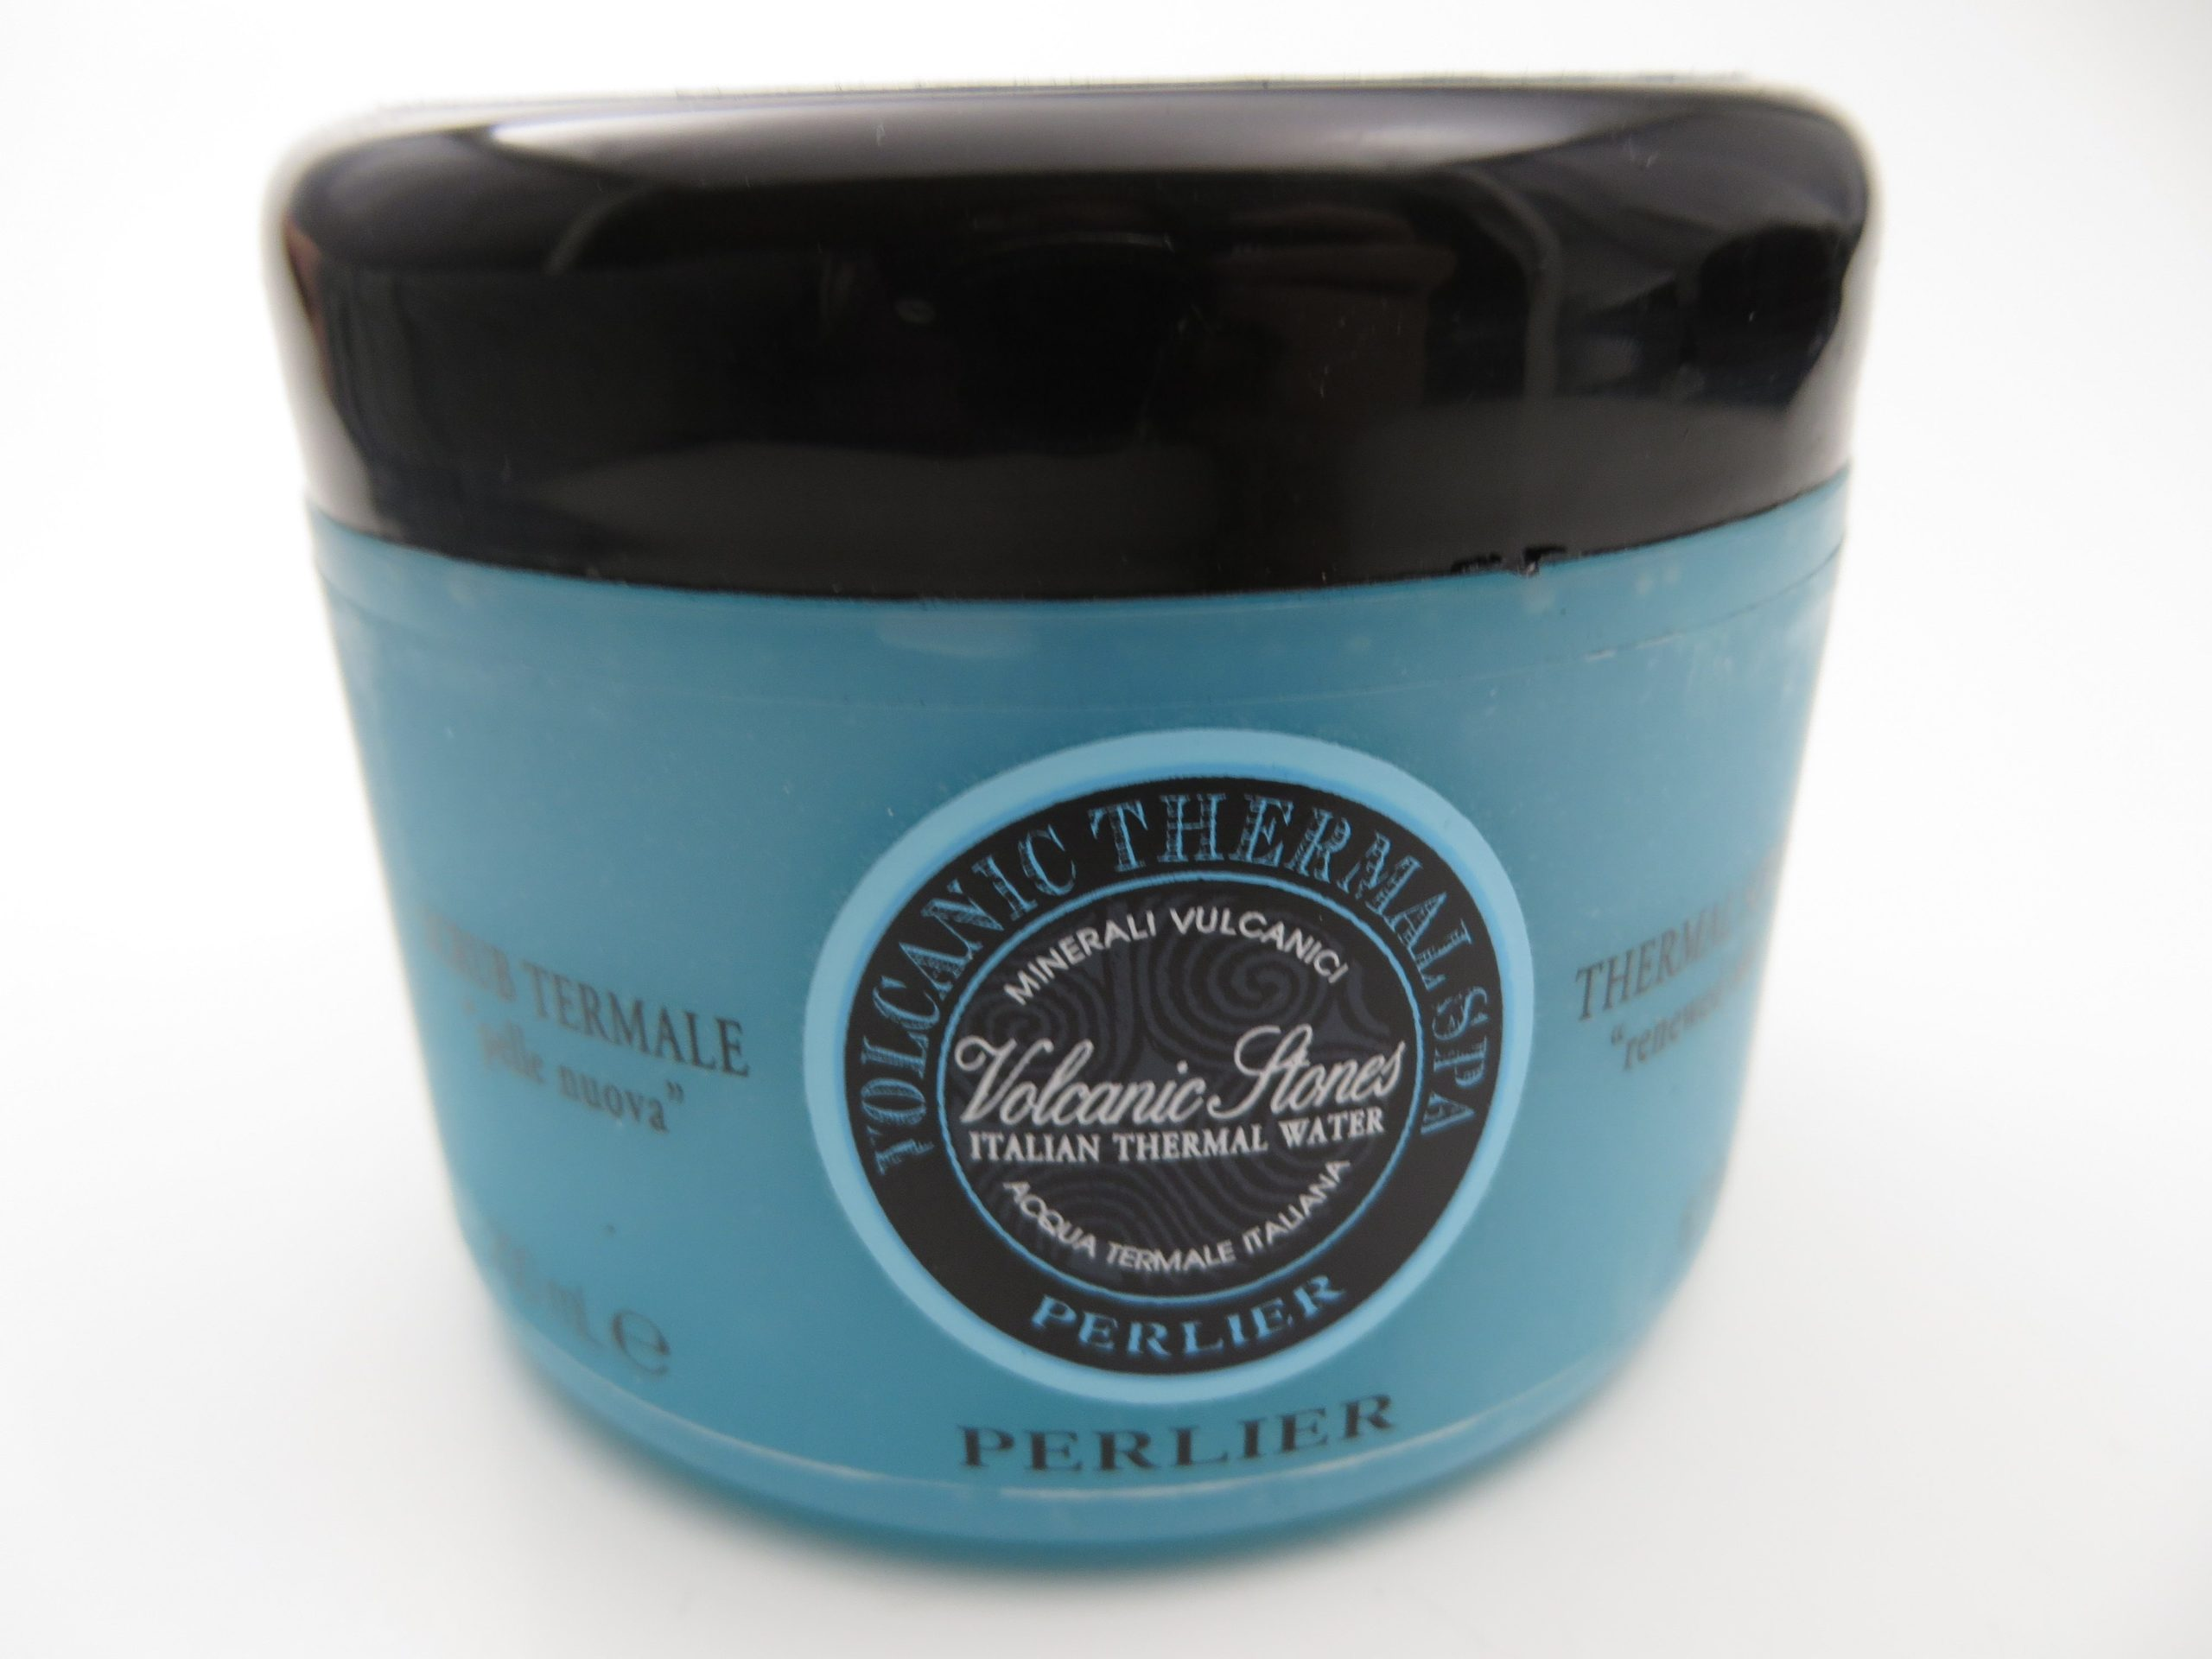 Perlier Thermal Volcanic Scrub Review